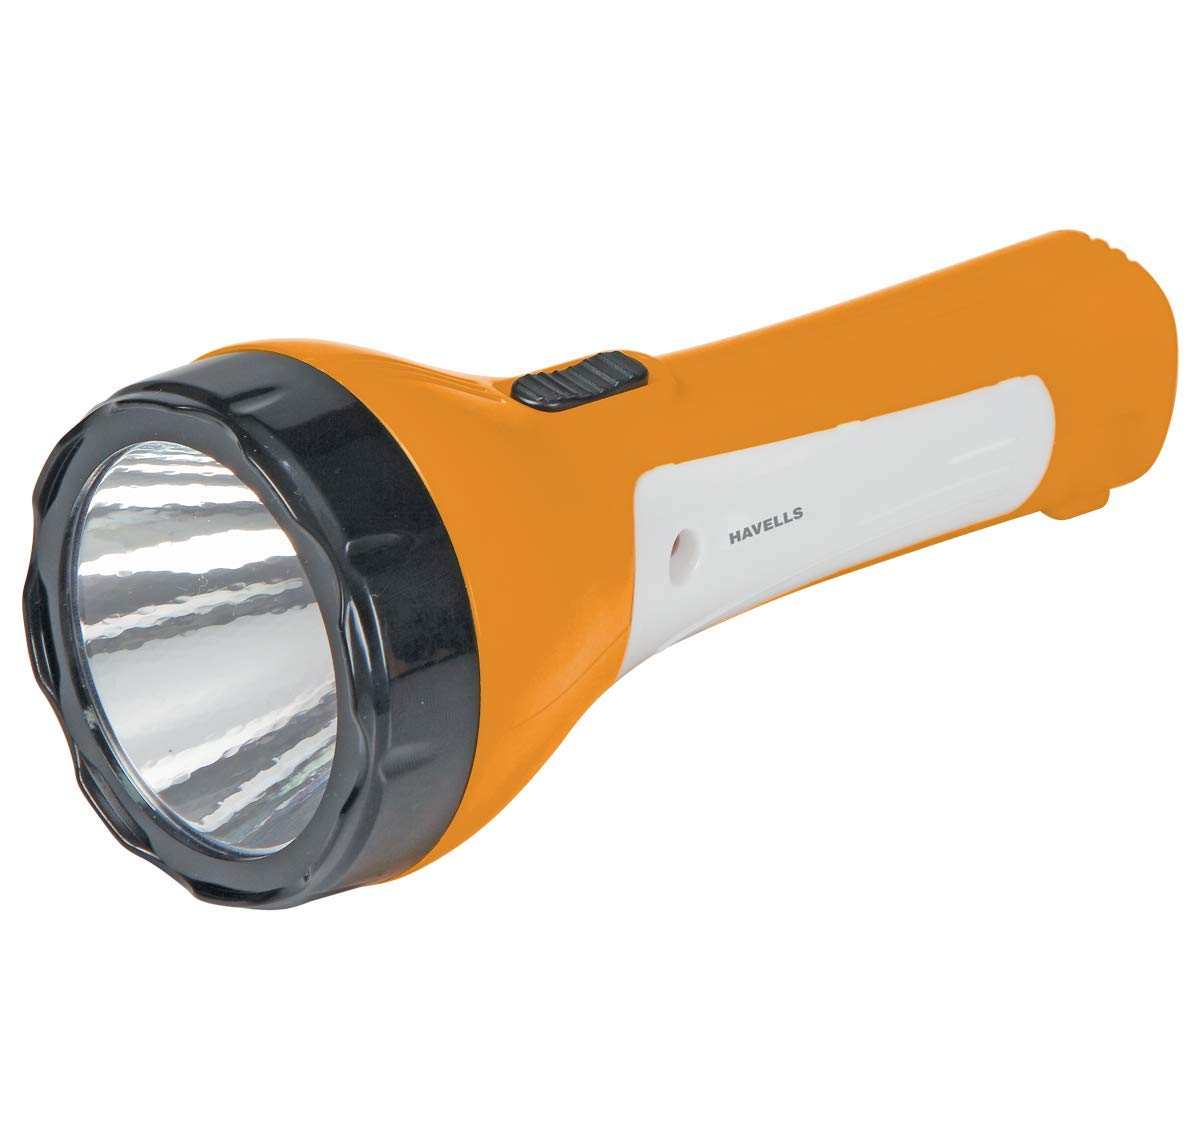 Top 10 Best Torch Light In India under 500 : Havells Torch